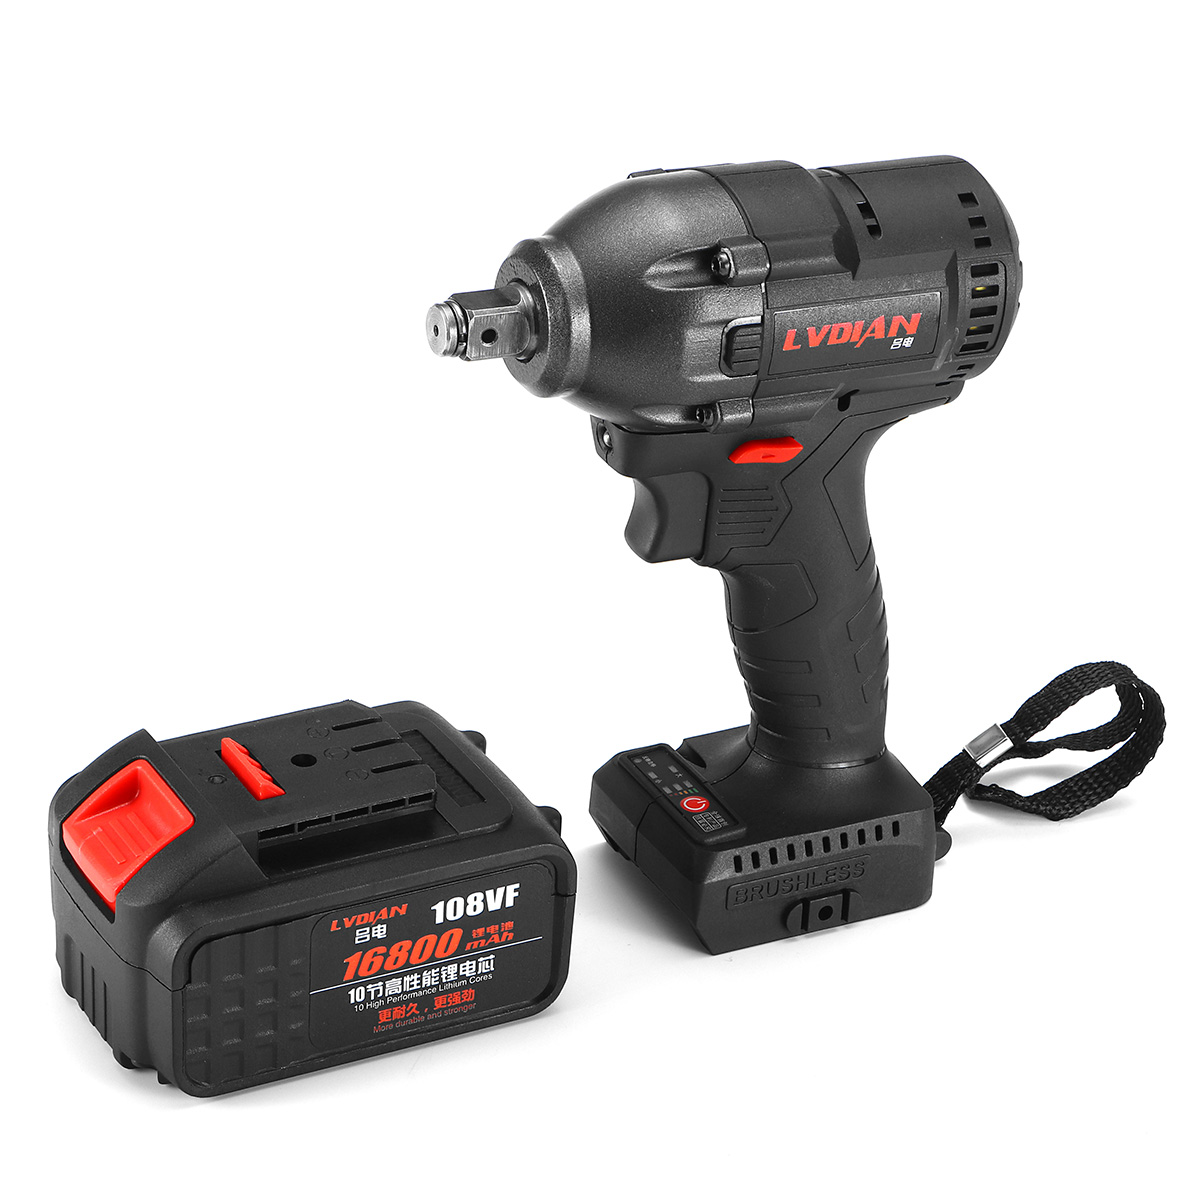 Electric Impact Wrench 21V Infinitely Cordless Speed Brushless Impact Electric Wrench 16800mAh Rechargeable Lithium Battery